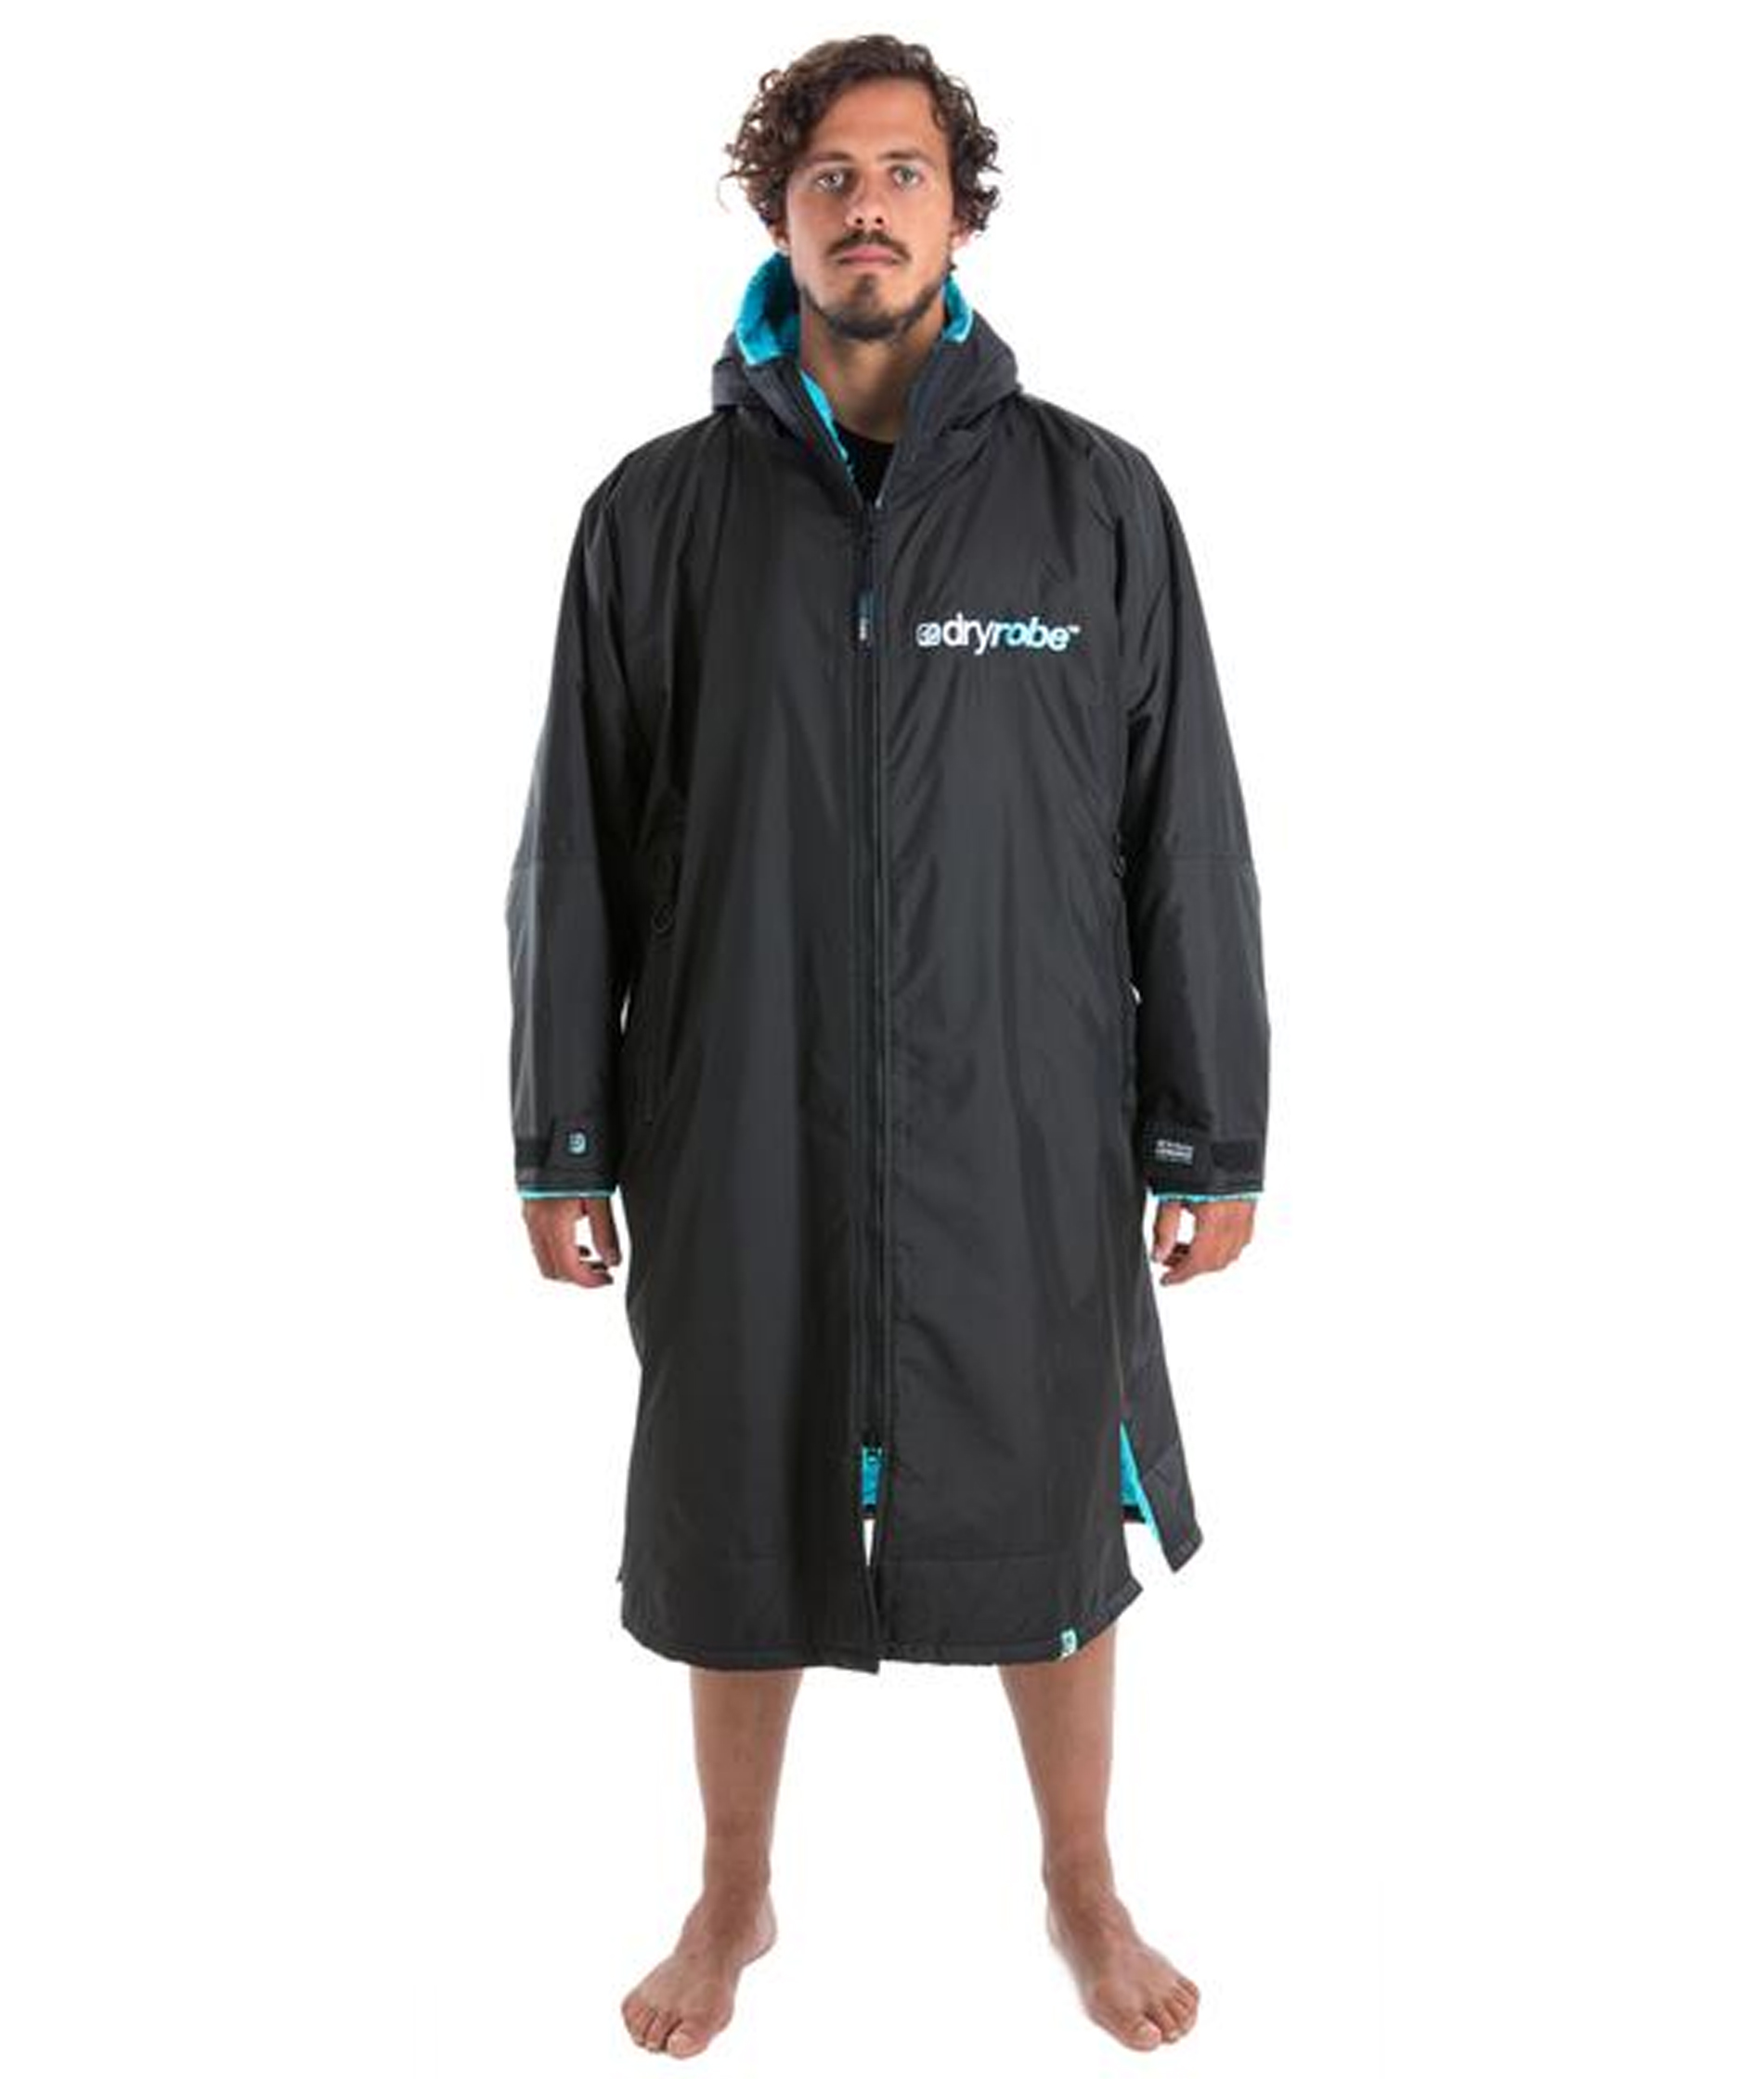 Dryrobe Advance Long Sleeve Black/Blue - Medium